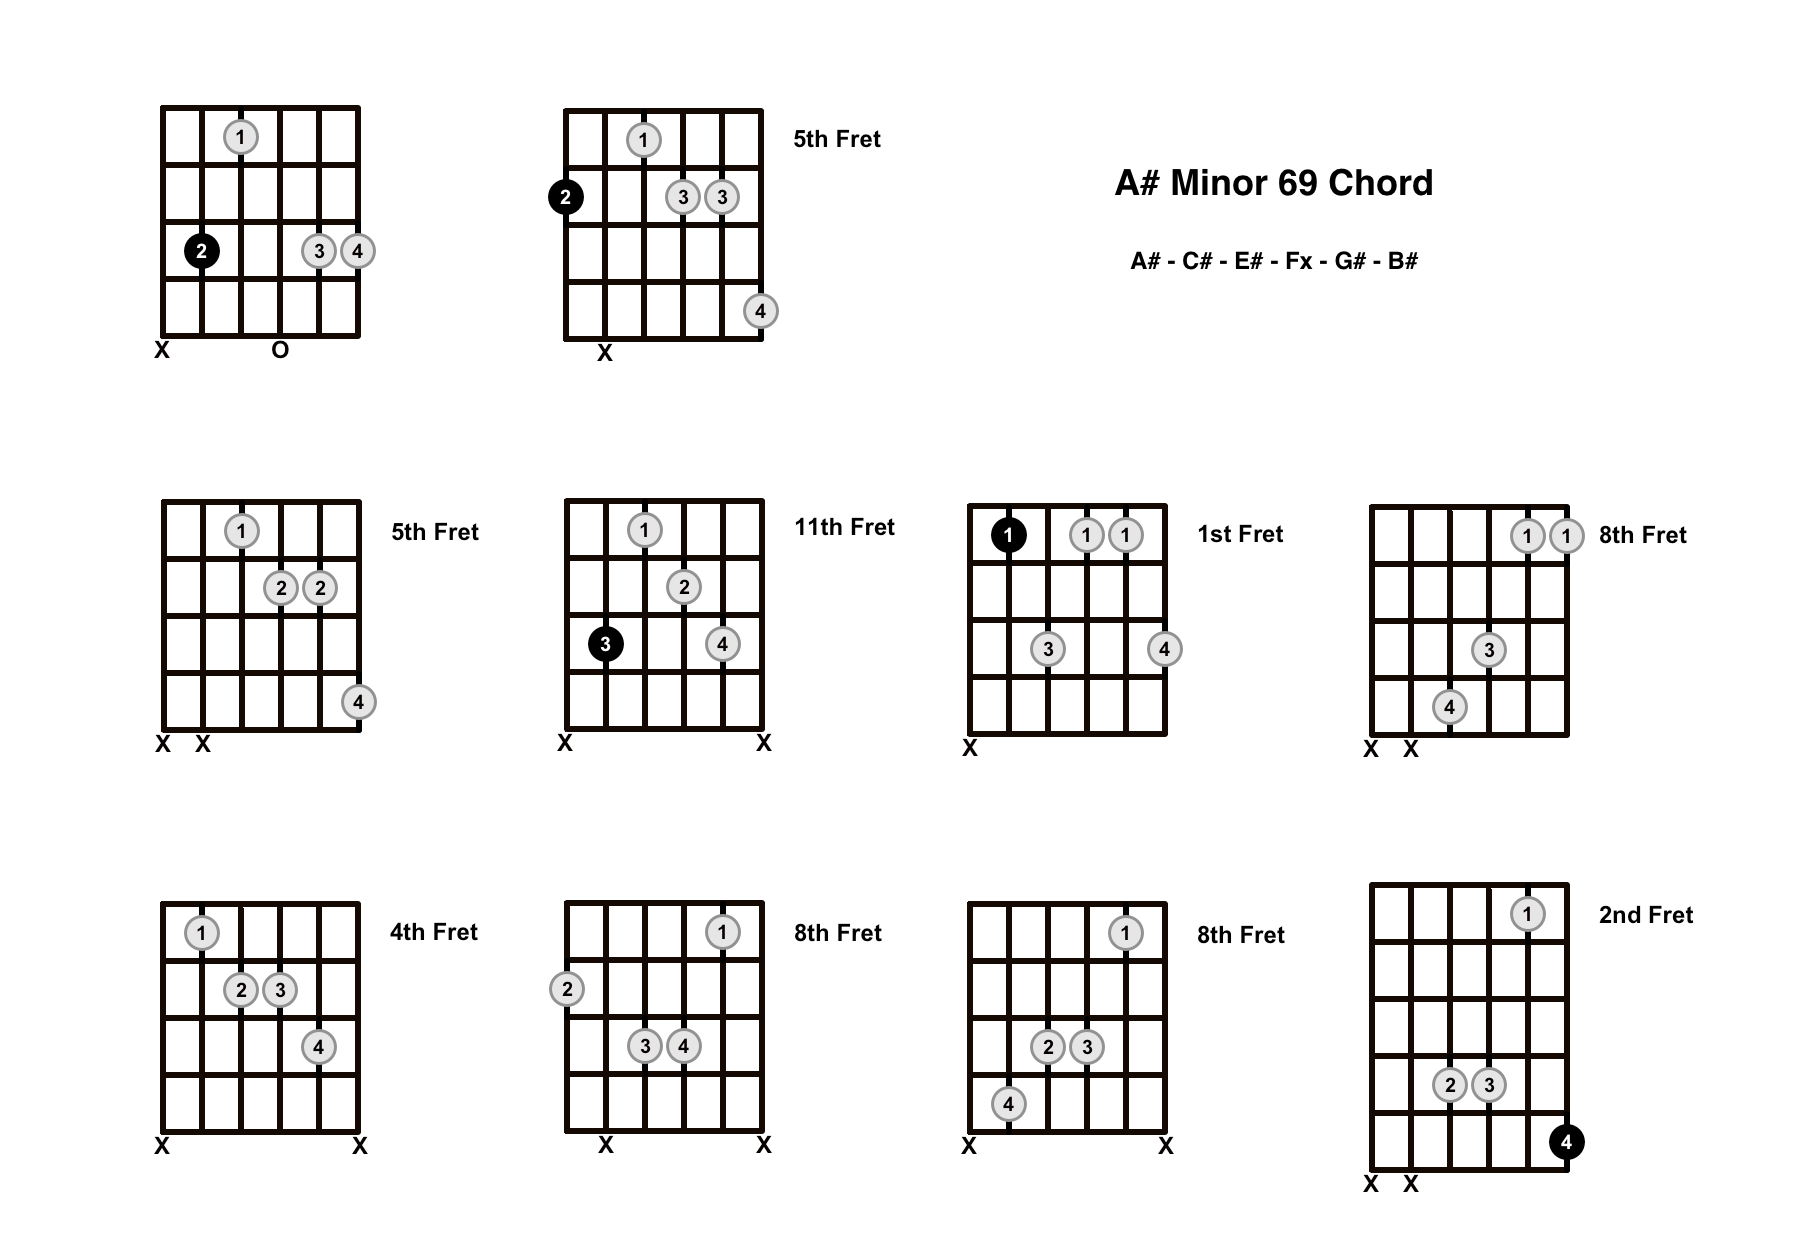 A#m69 Chord On The Guitar (A Sharp Minor 69) – Diagrams, Finger Positions and Theory